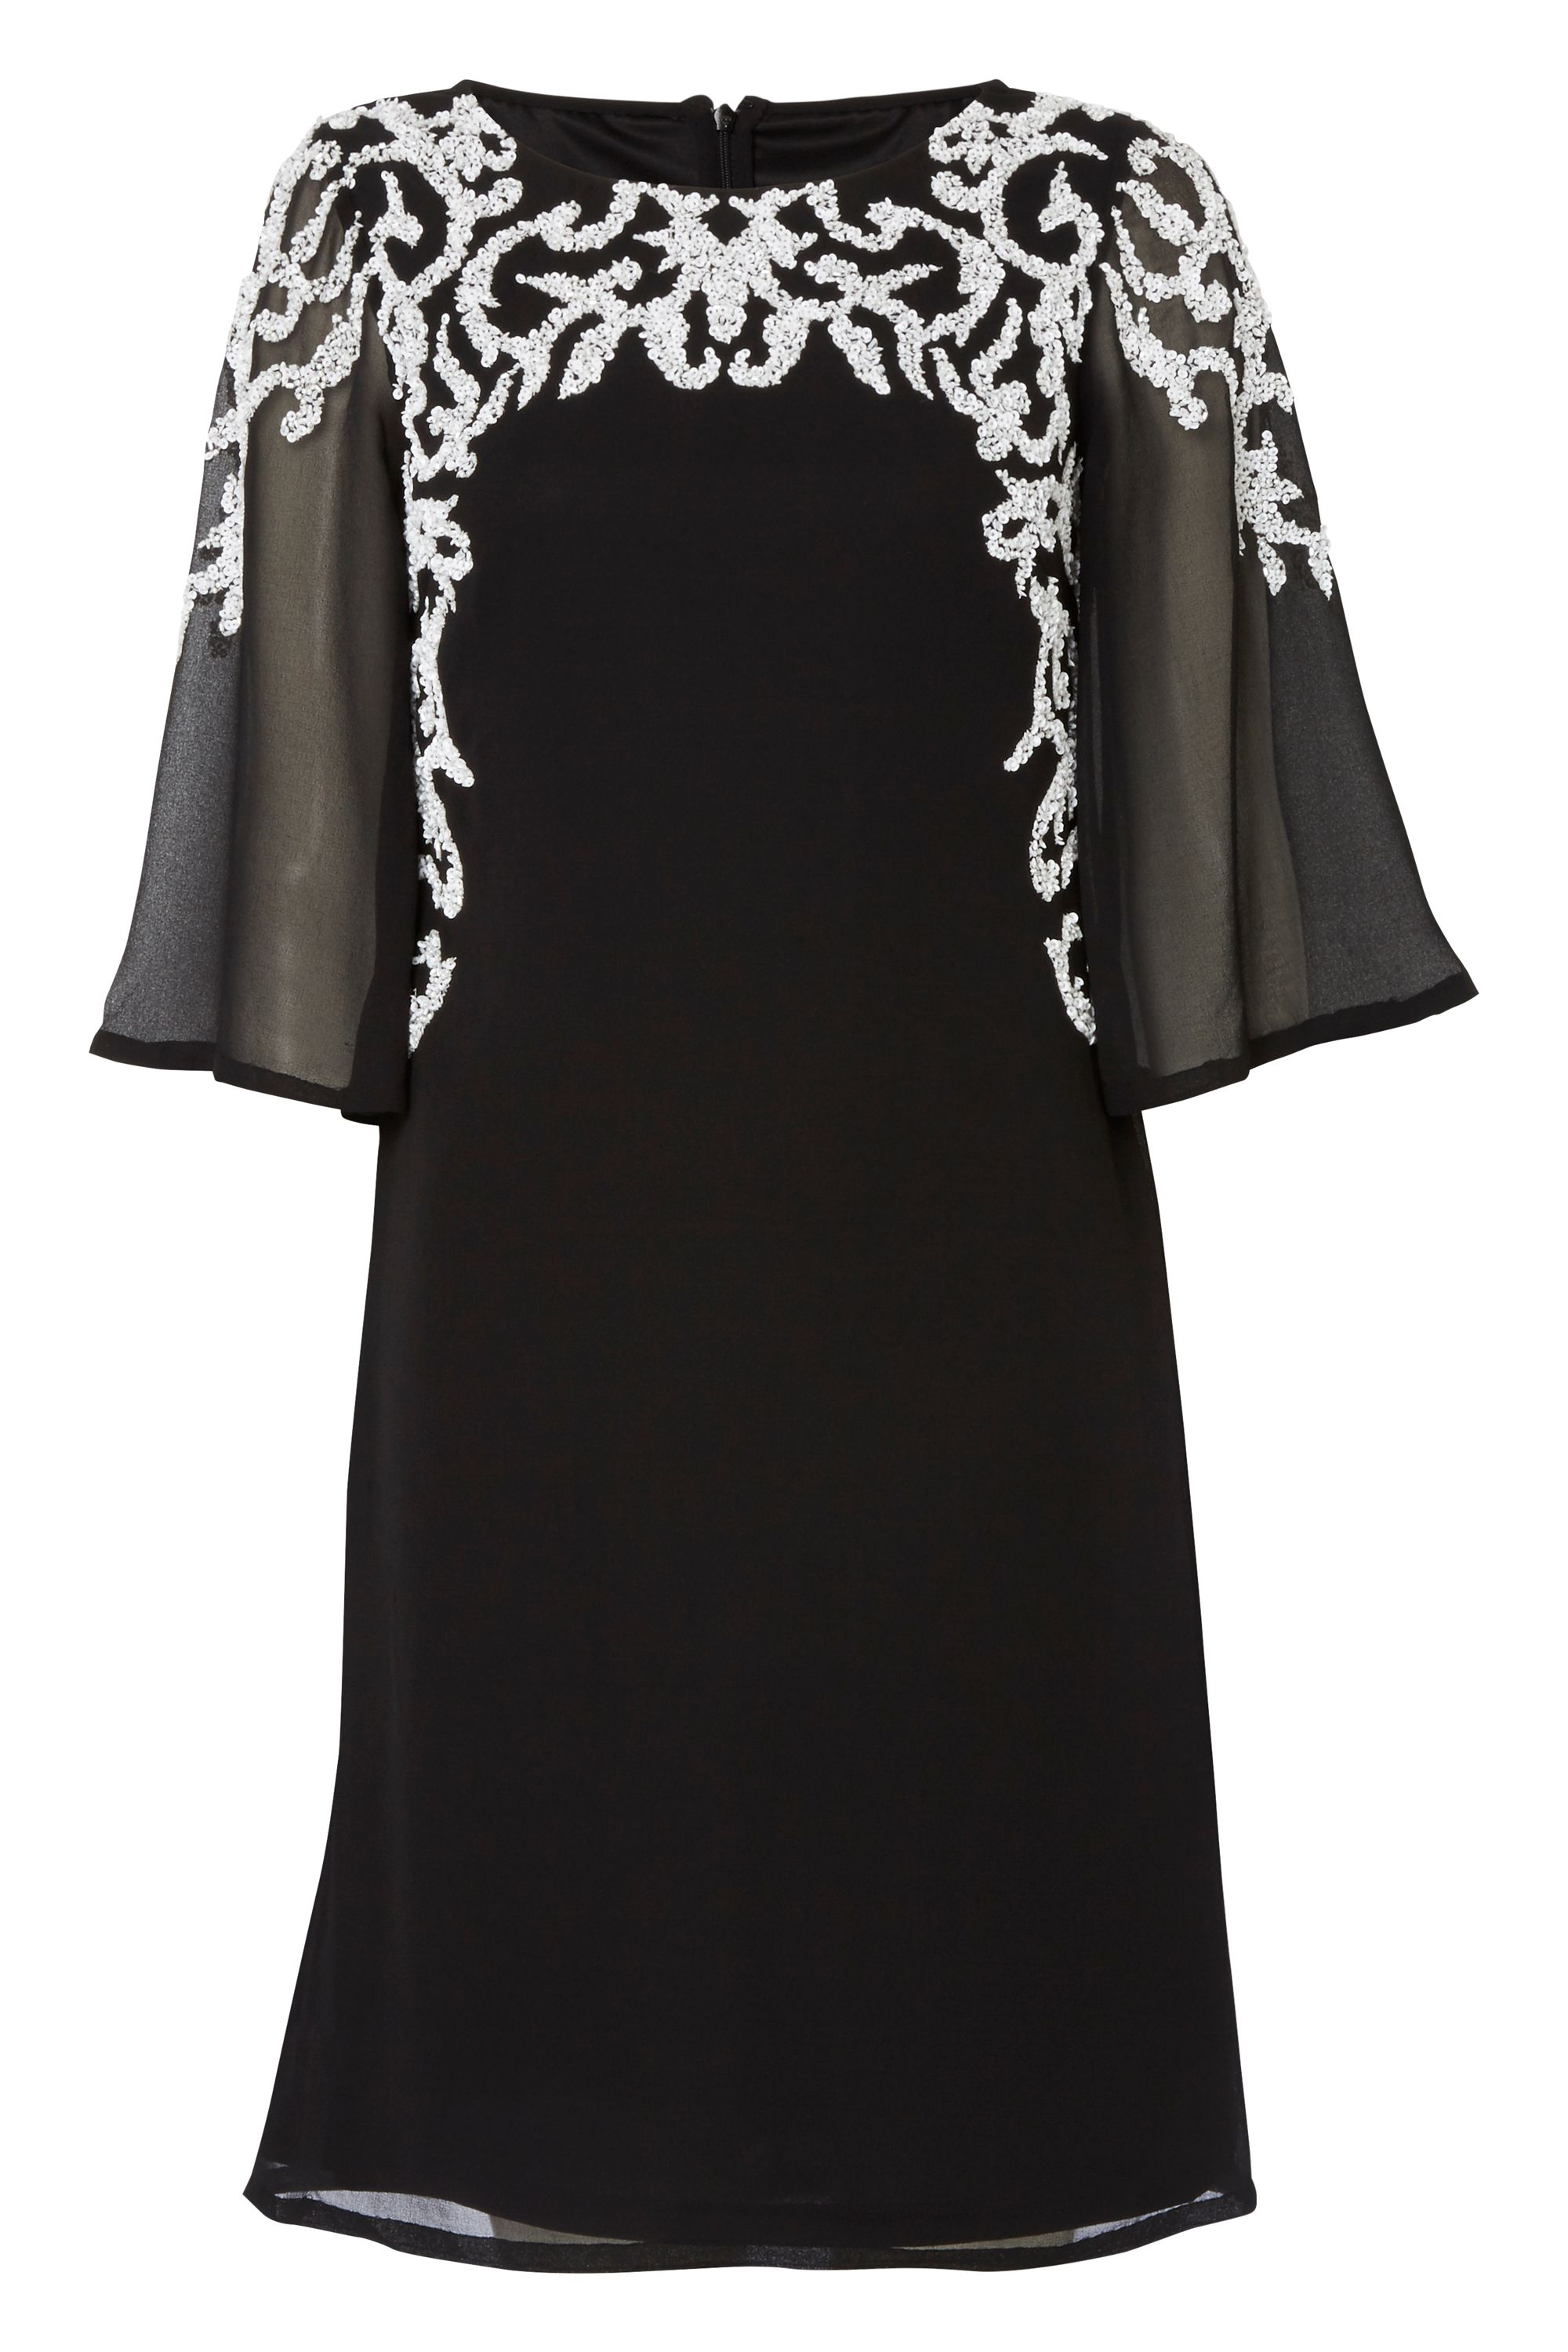 RAISHMA Wide Sleeve Dress With White Beading, Black